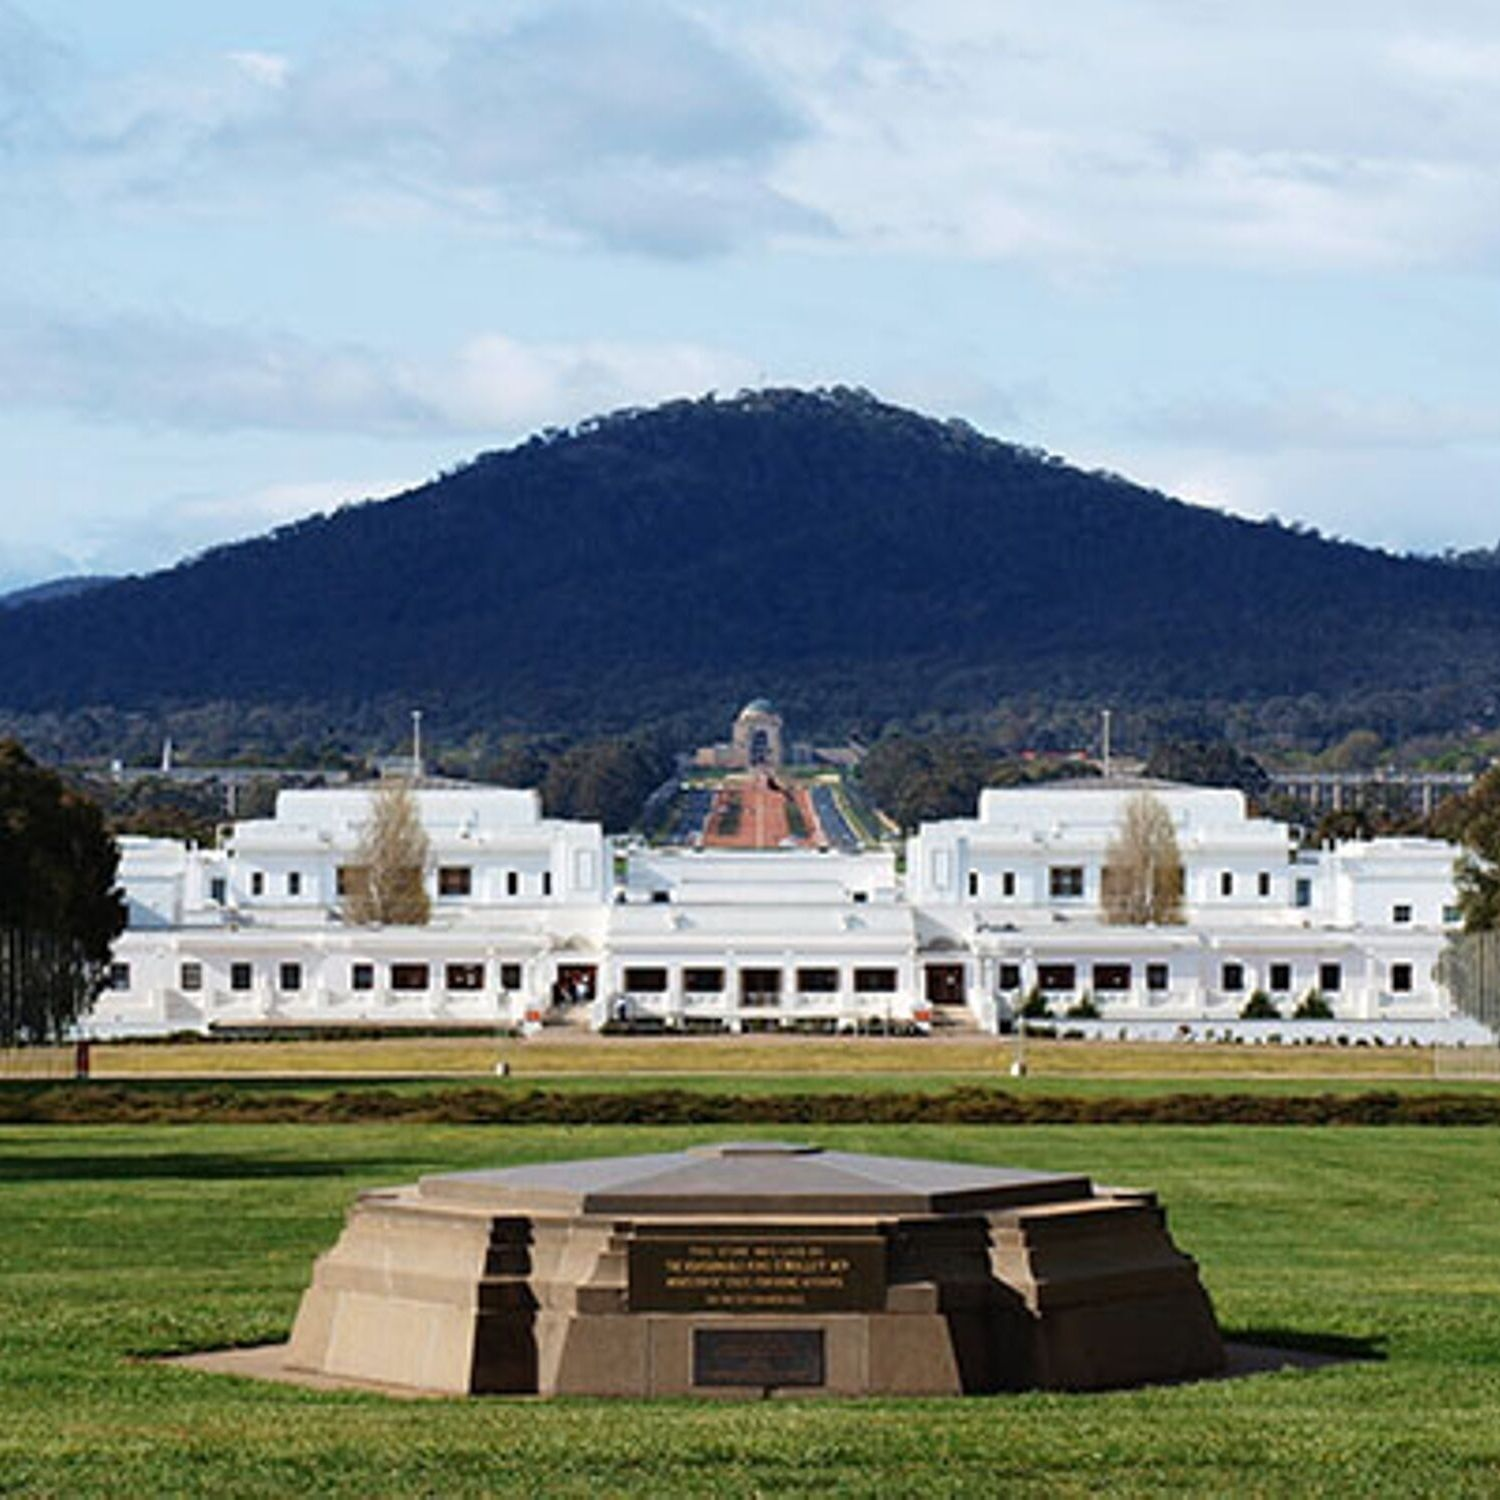 canberra short term holiday accommodation hotel motel budget ACT old parliament house australia museum democracy national icon